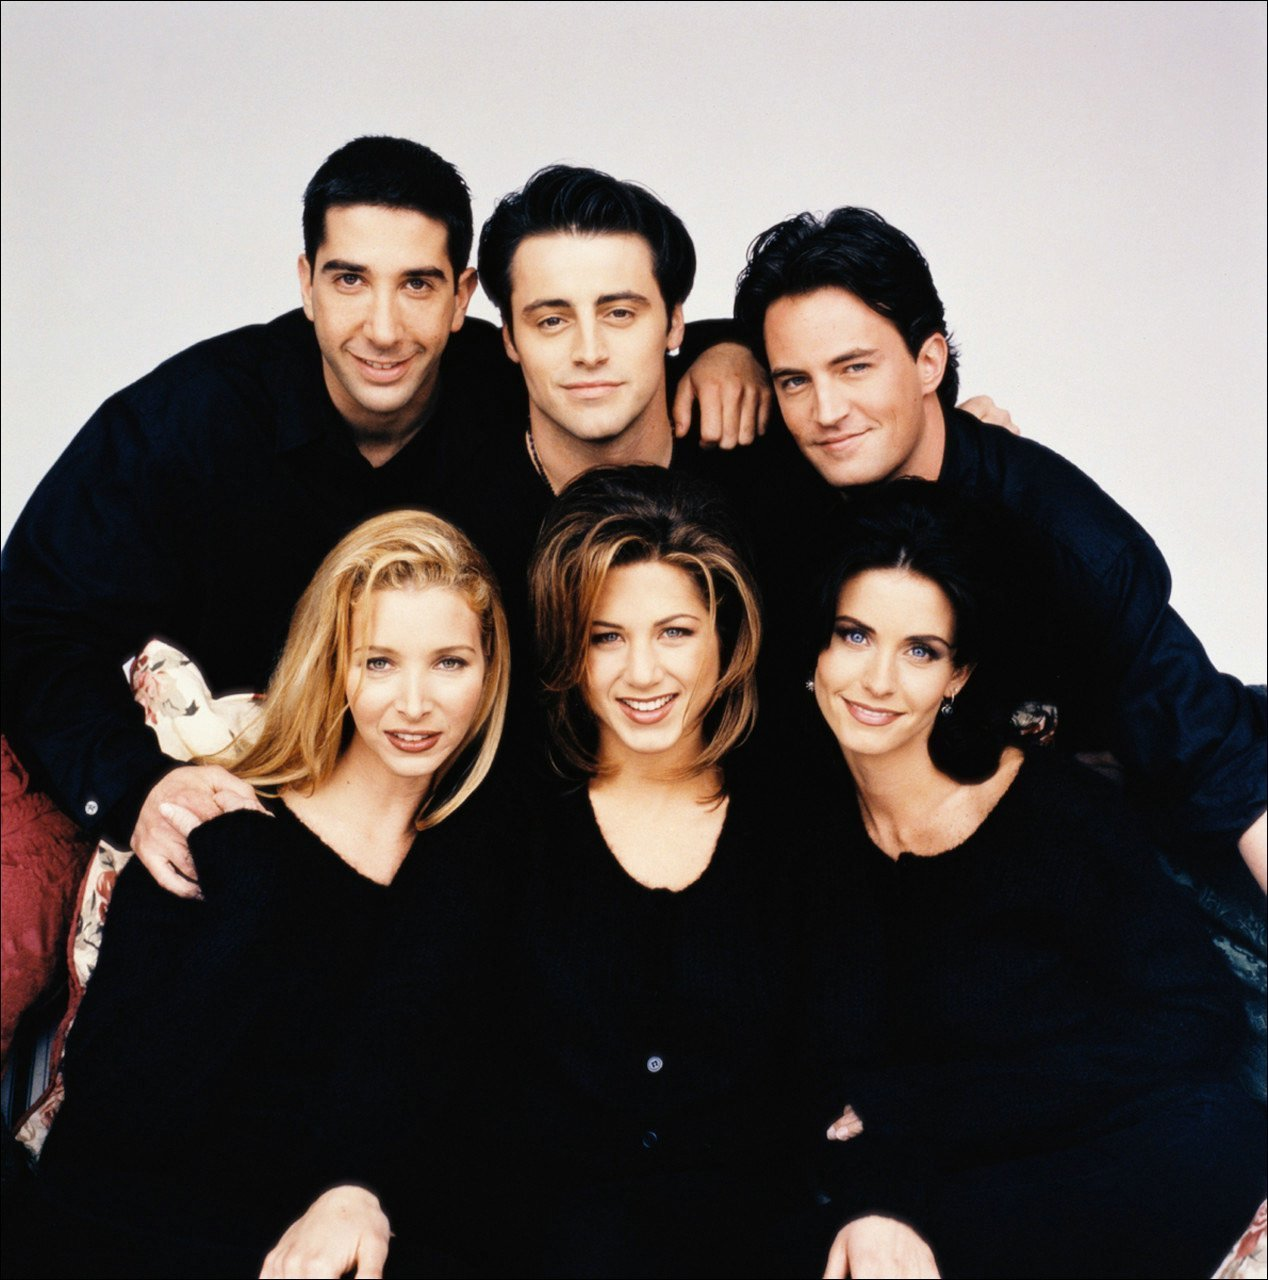 friends - photo #3